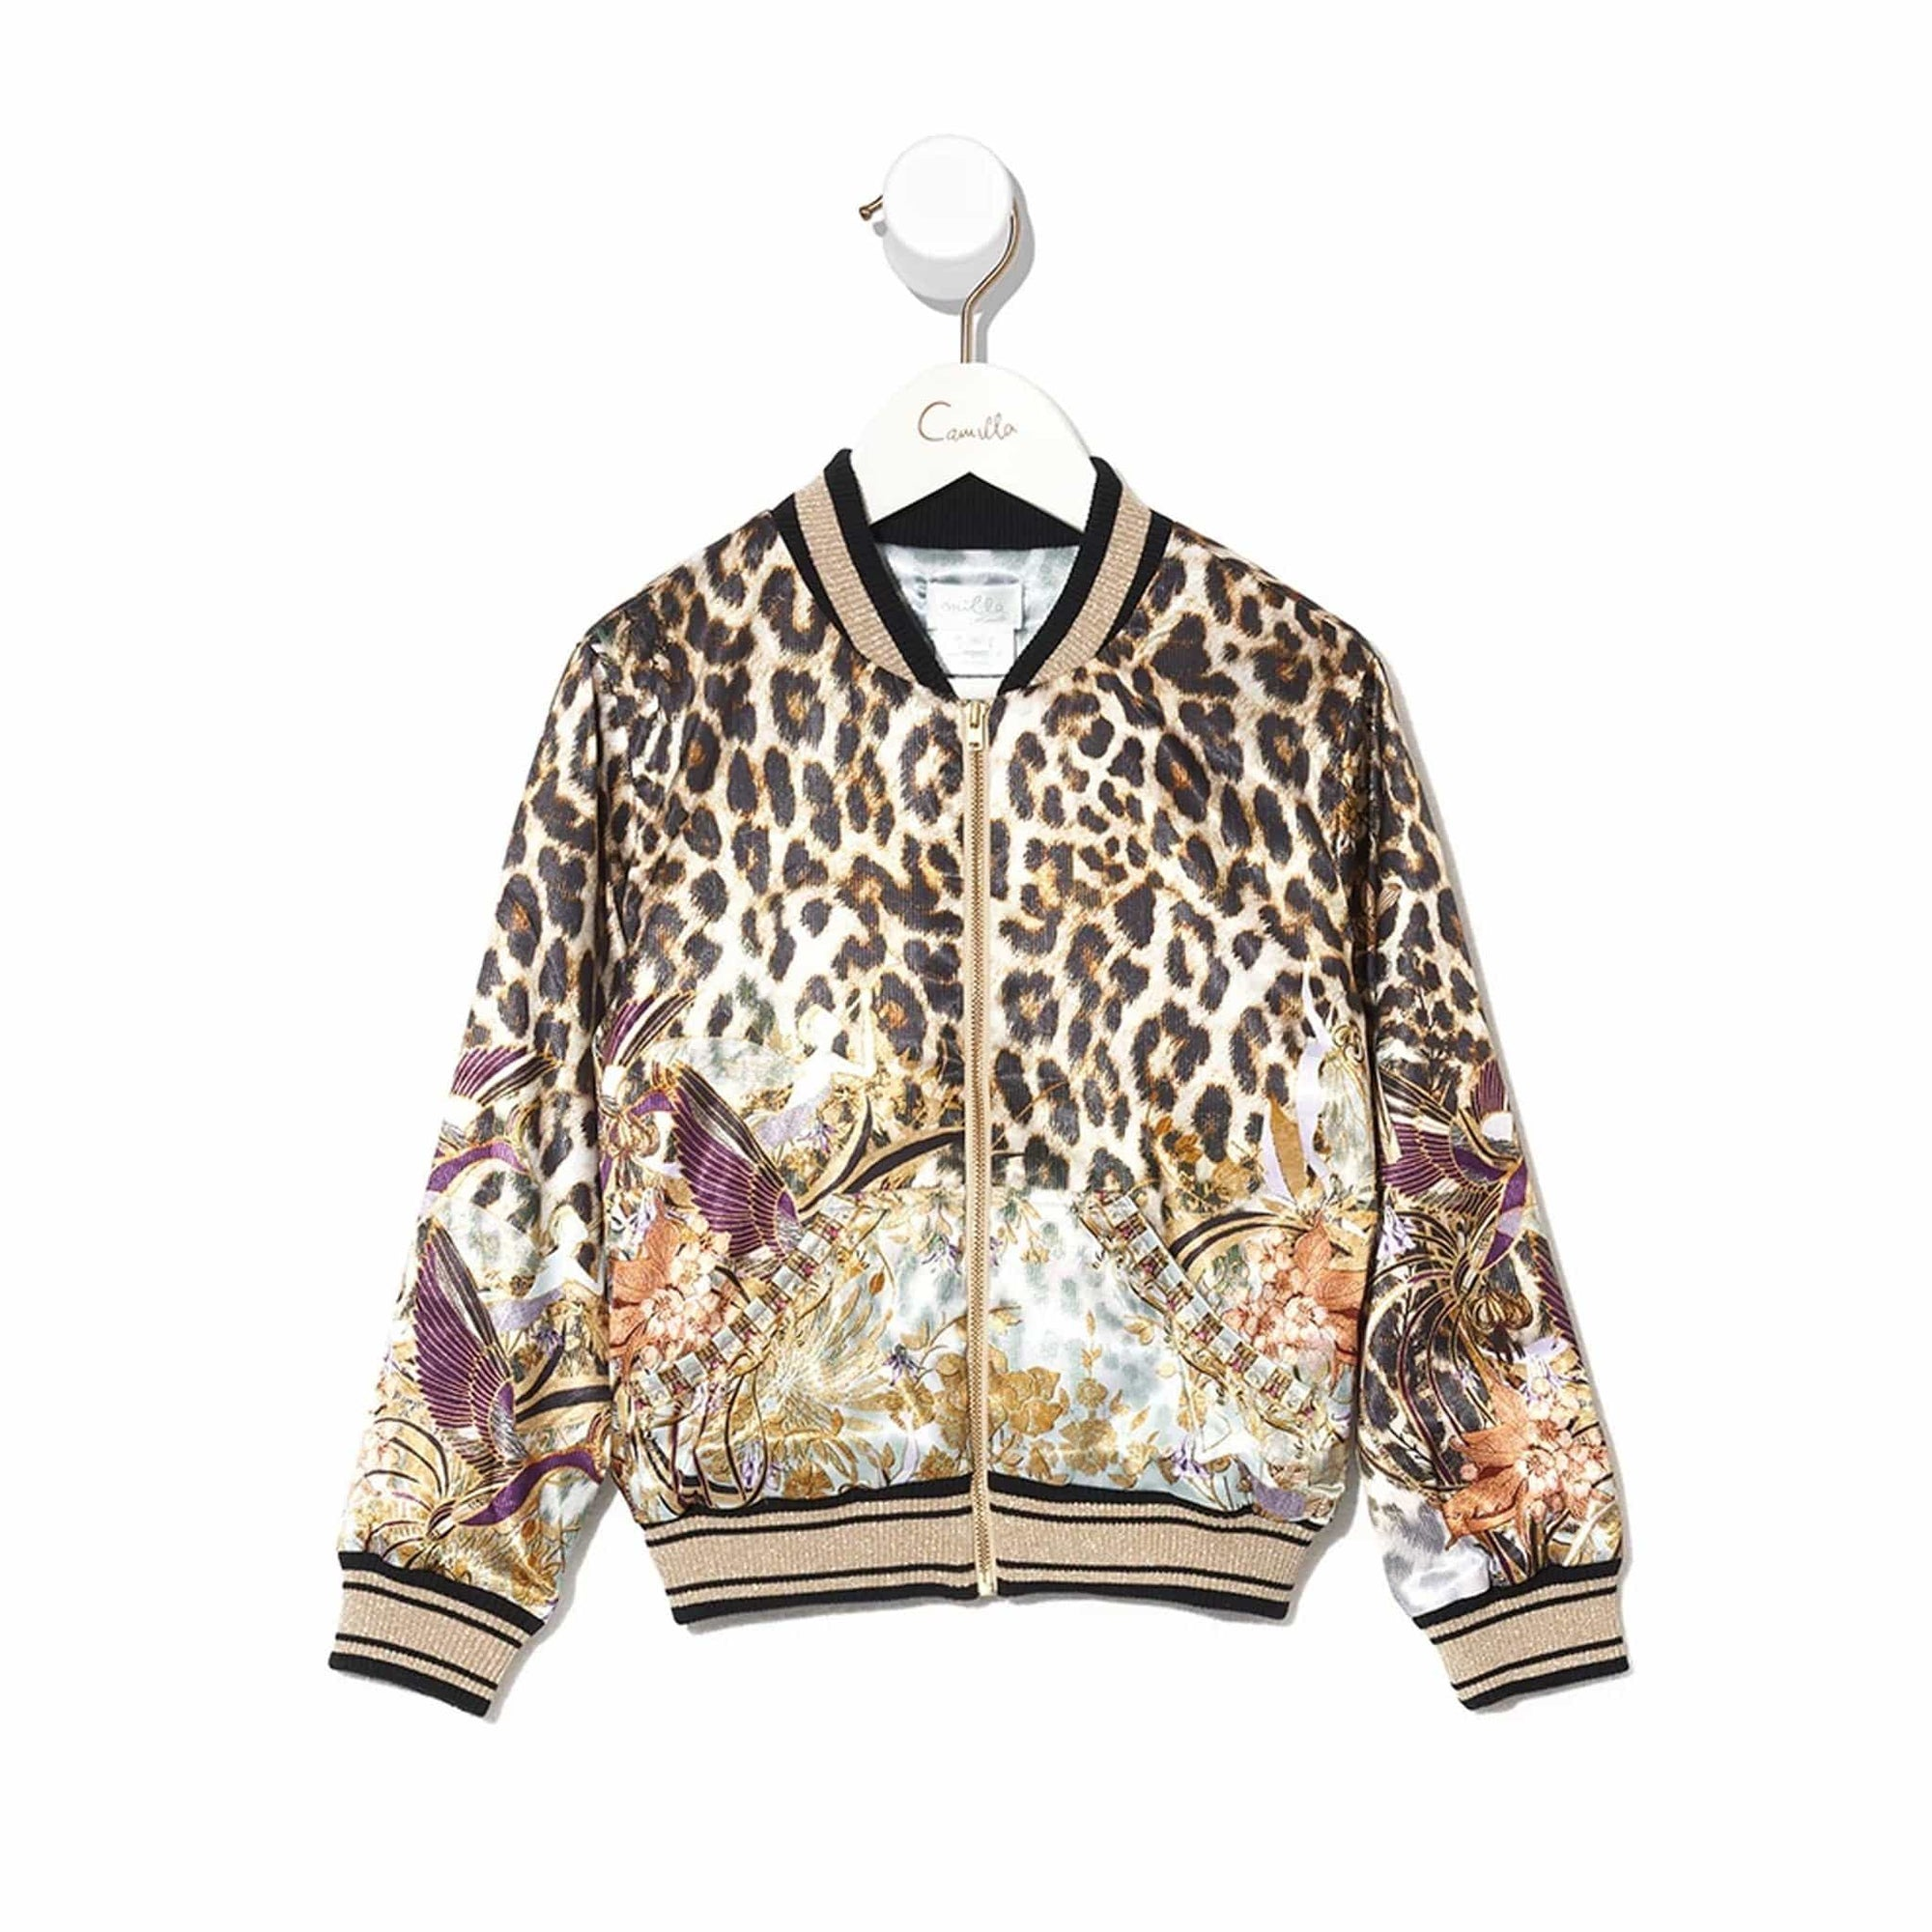 Camilla Nomadic Nymph Infants Bomber Jacket